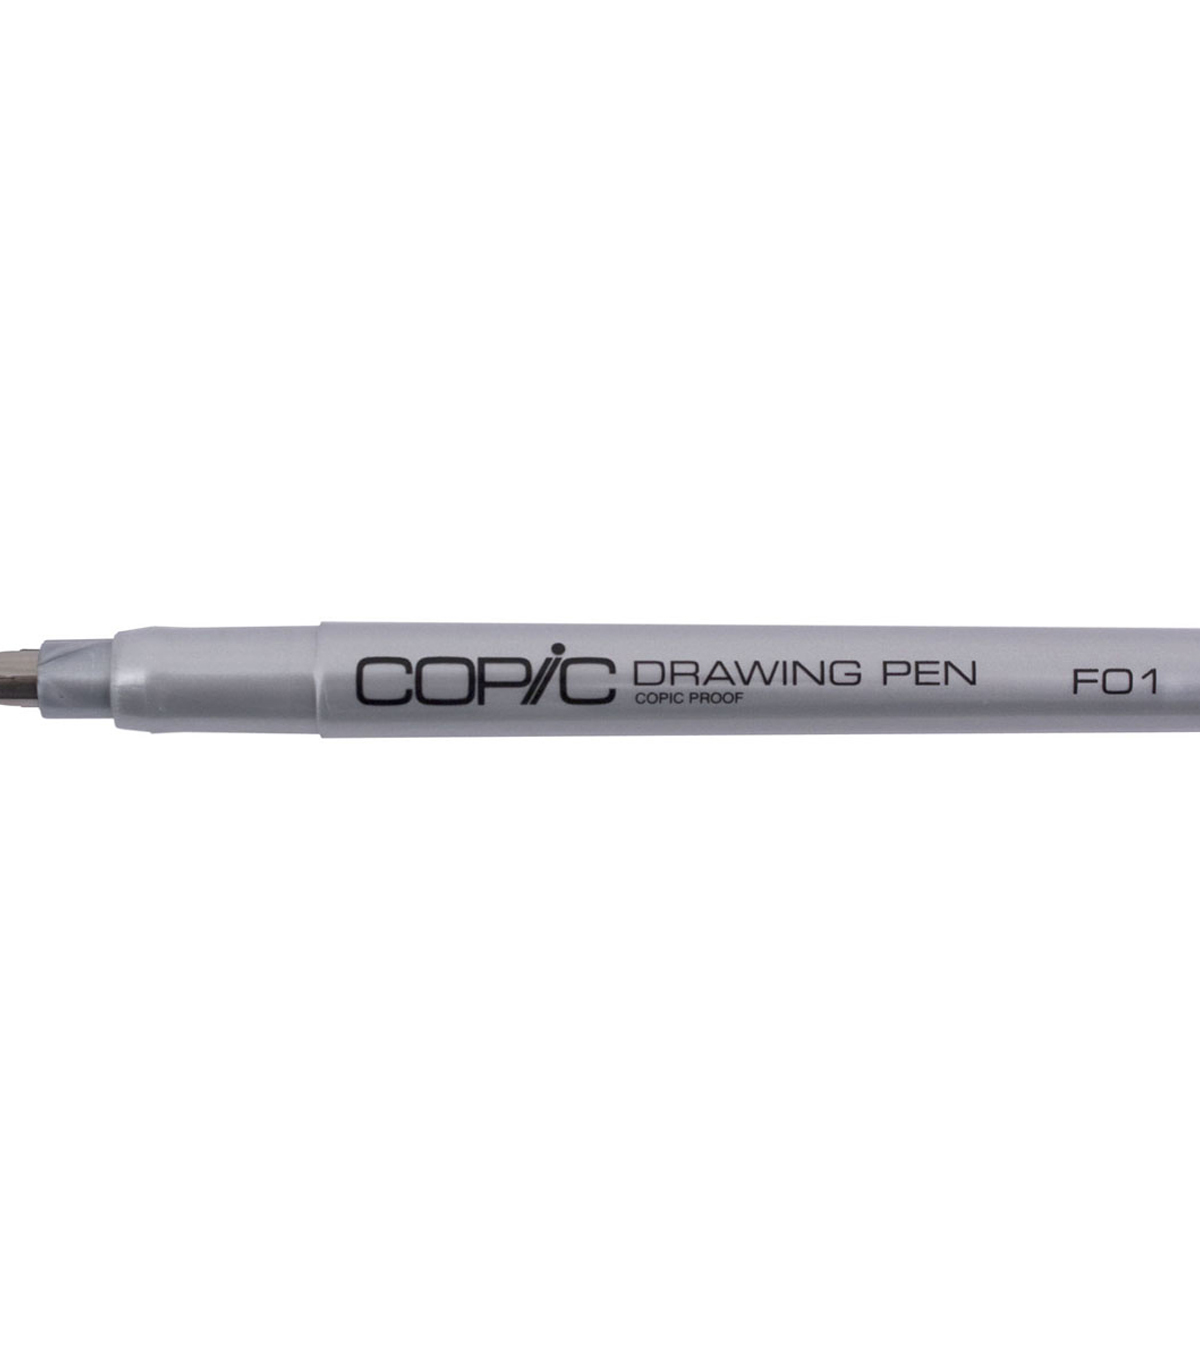 Copic 0.1 mm Drawing Pen-Black